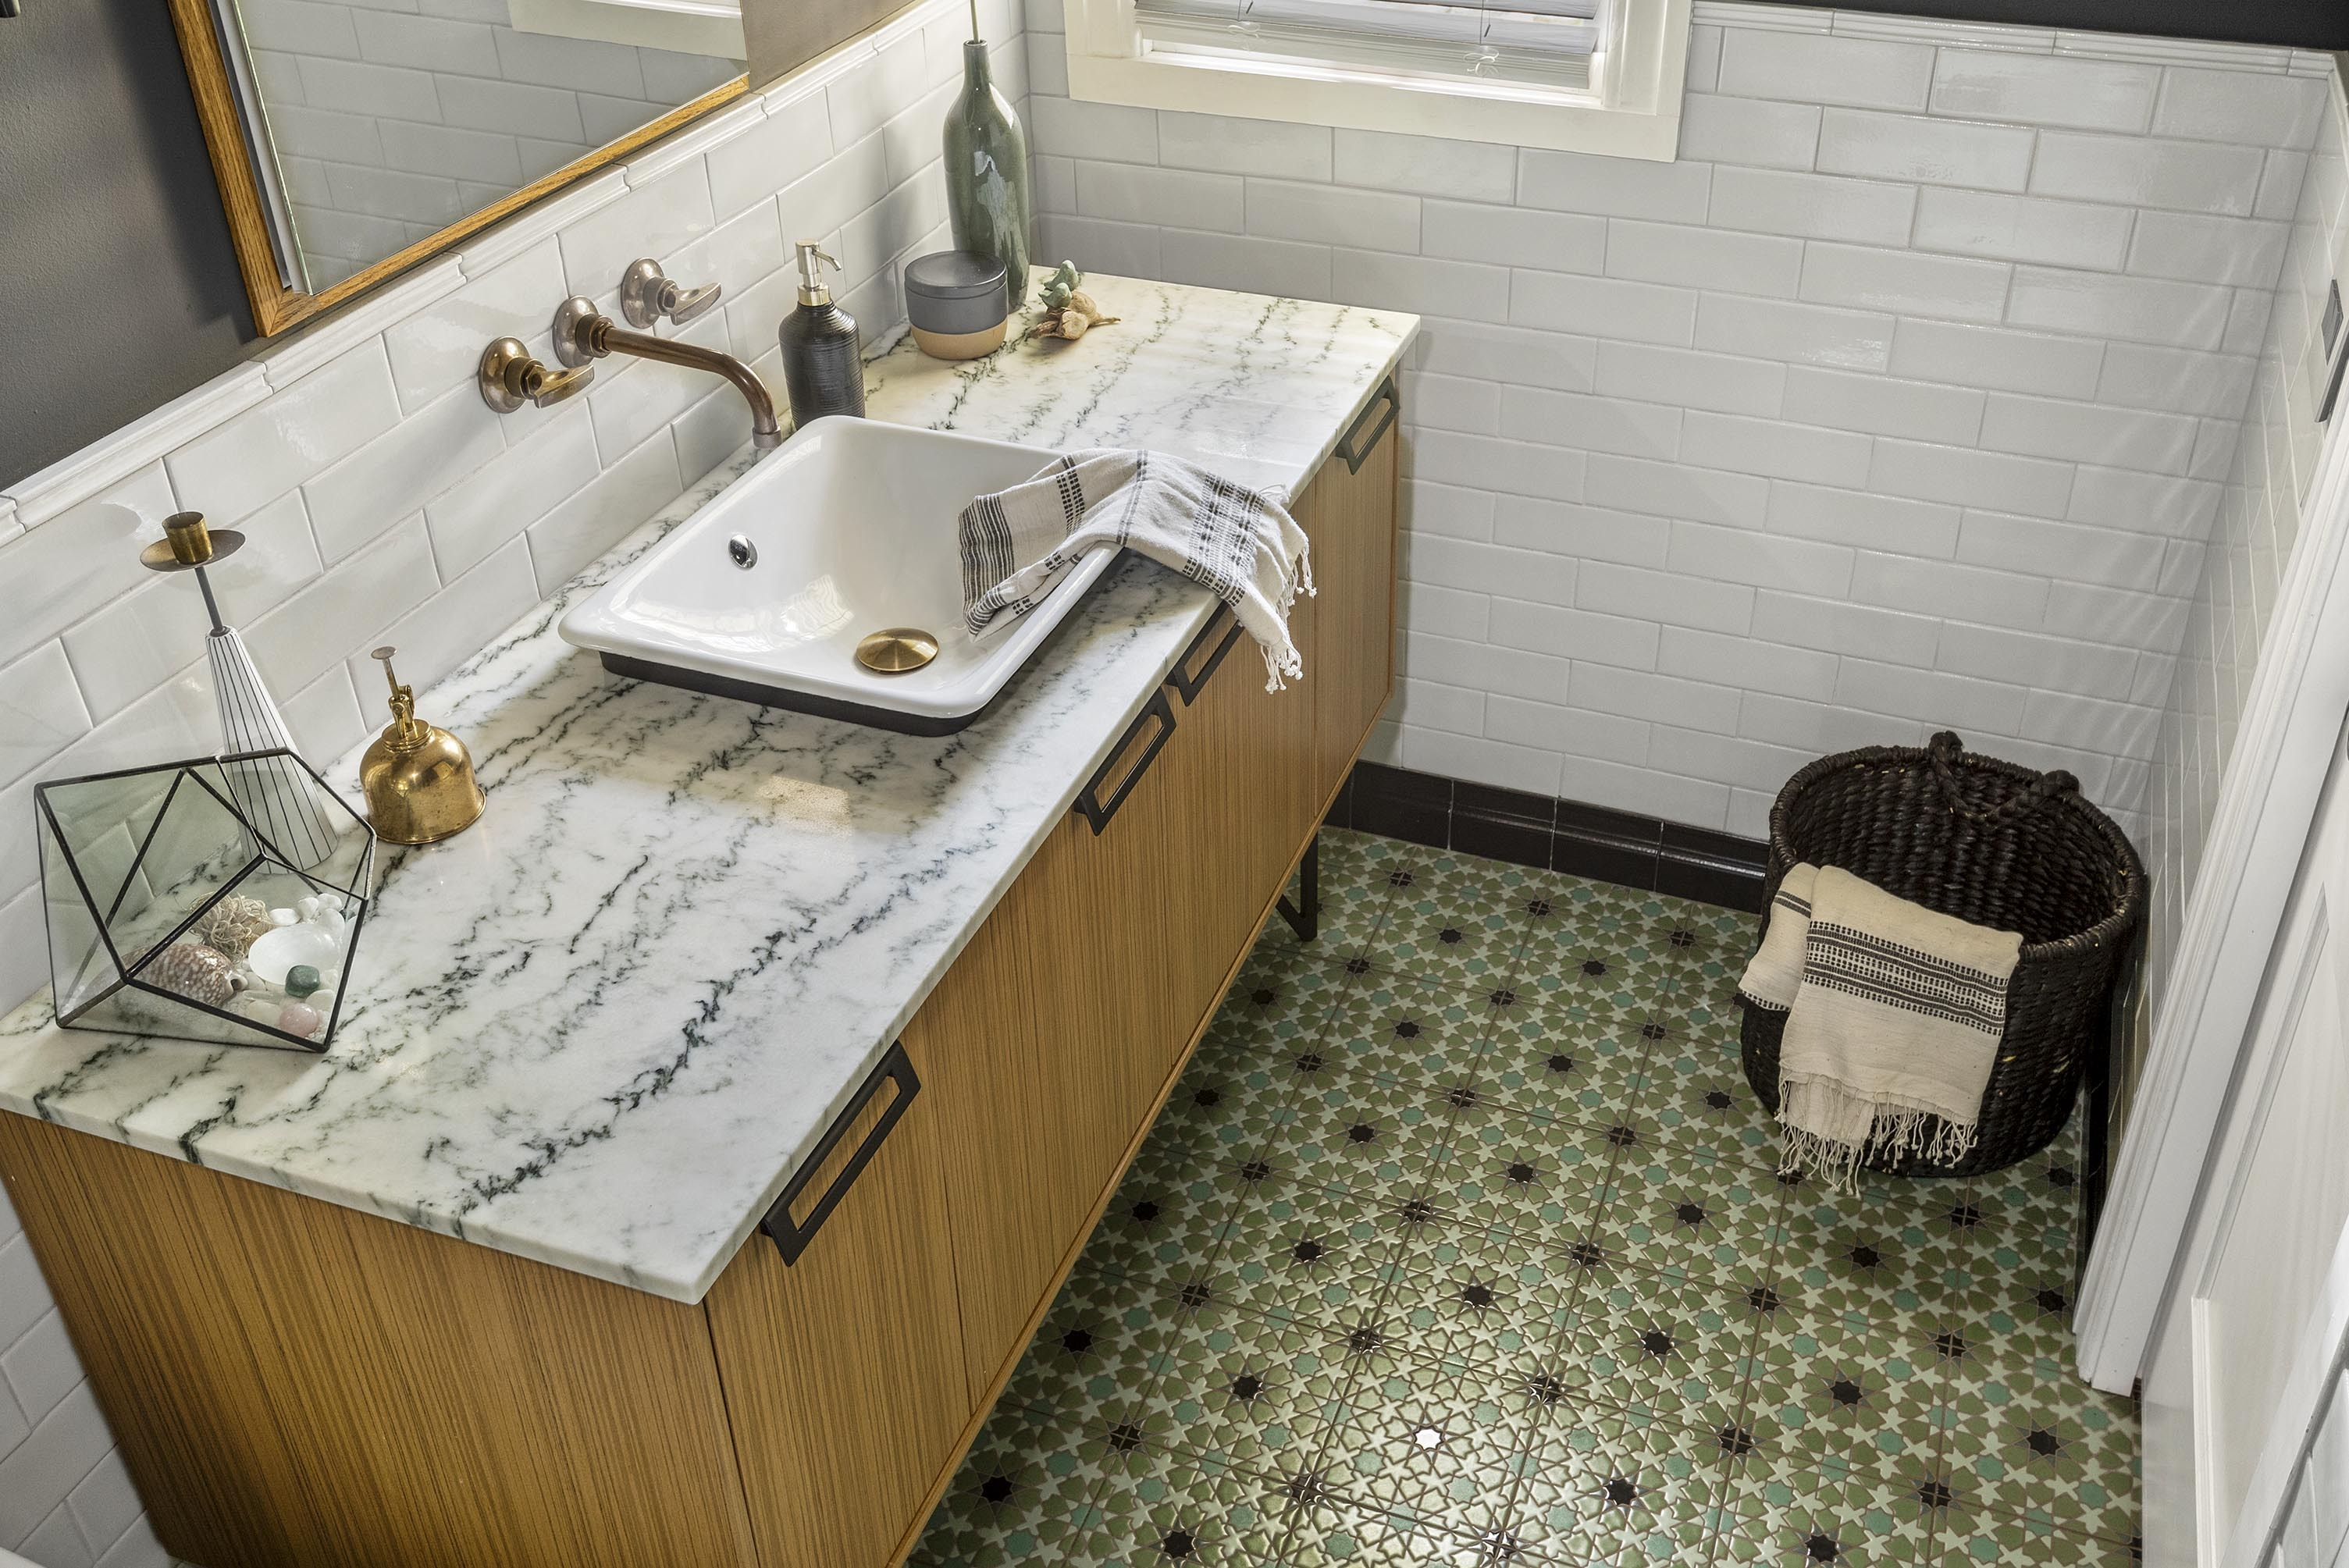 2017_q2_RIGHTS_img_residential_web_hi_res_Rickie_Agapito_AO_Fotos_brooke_eversoll_bee_studios_ceramic_handpainted_bathroom_floor_elephant_star_8x8_cool_motif_FC193469_32.mp46.jpg?mtime=20181016115528#asset:420512